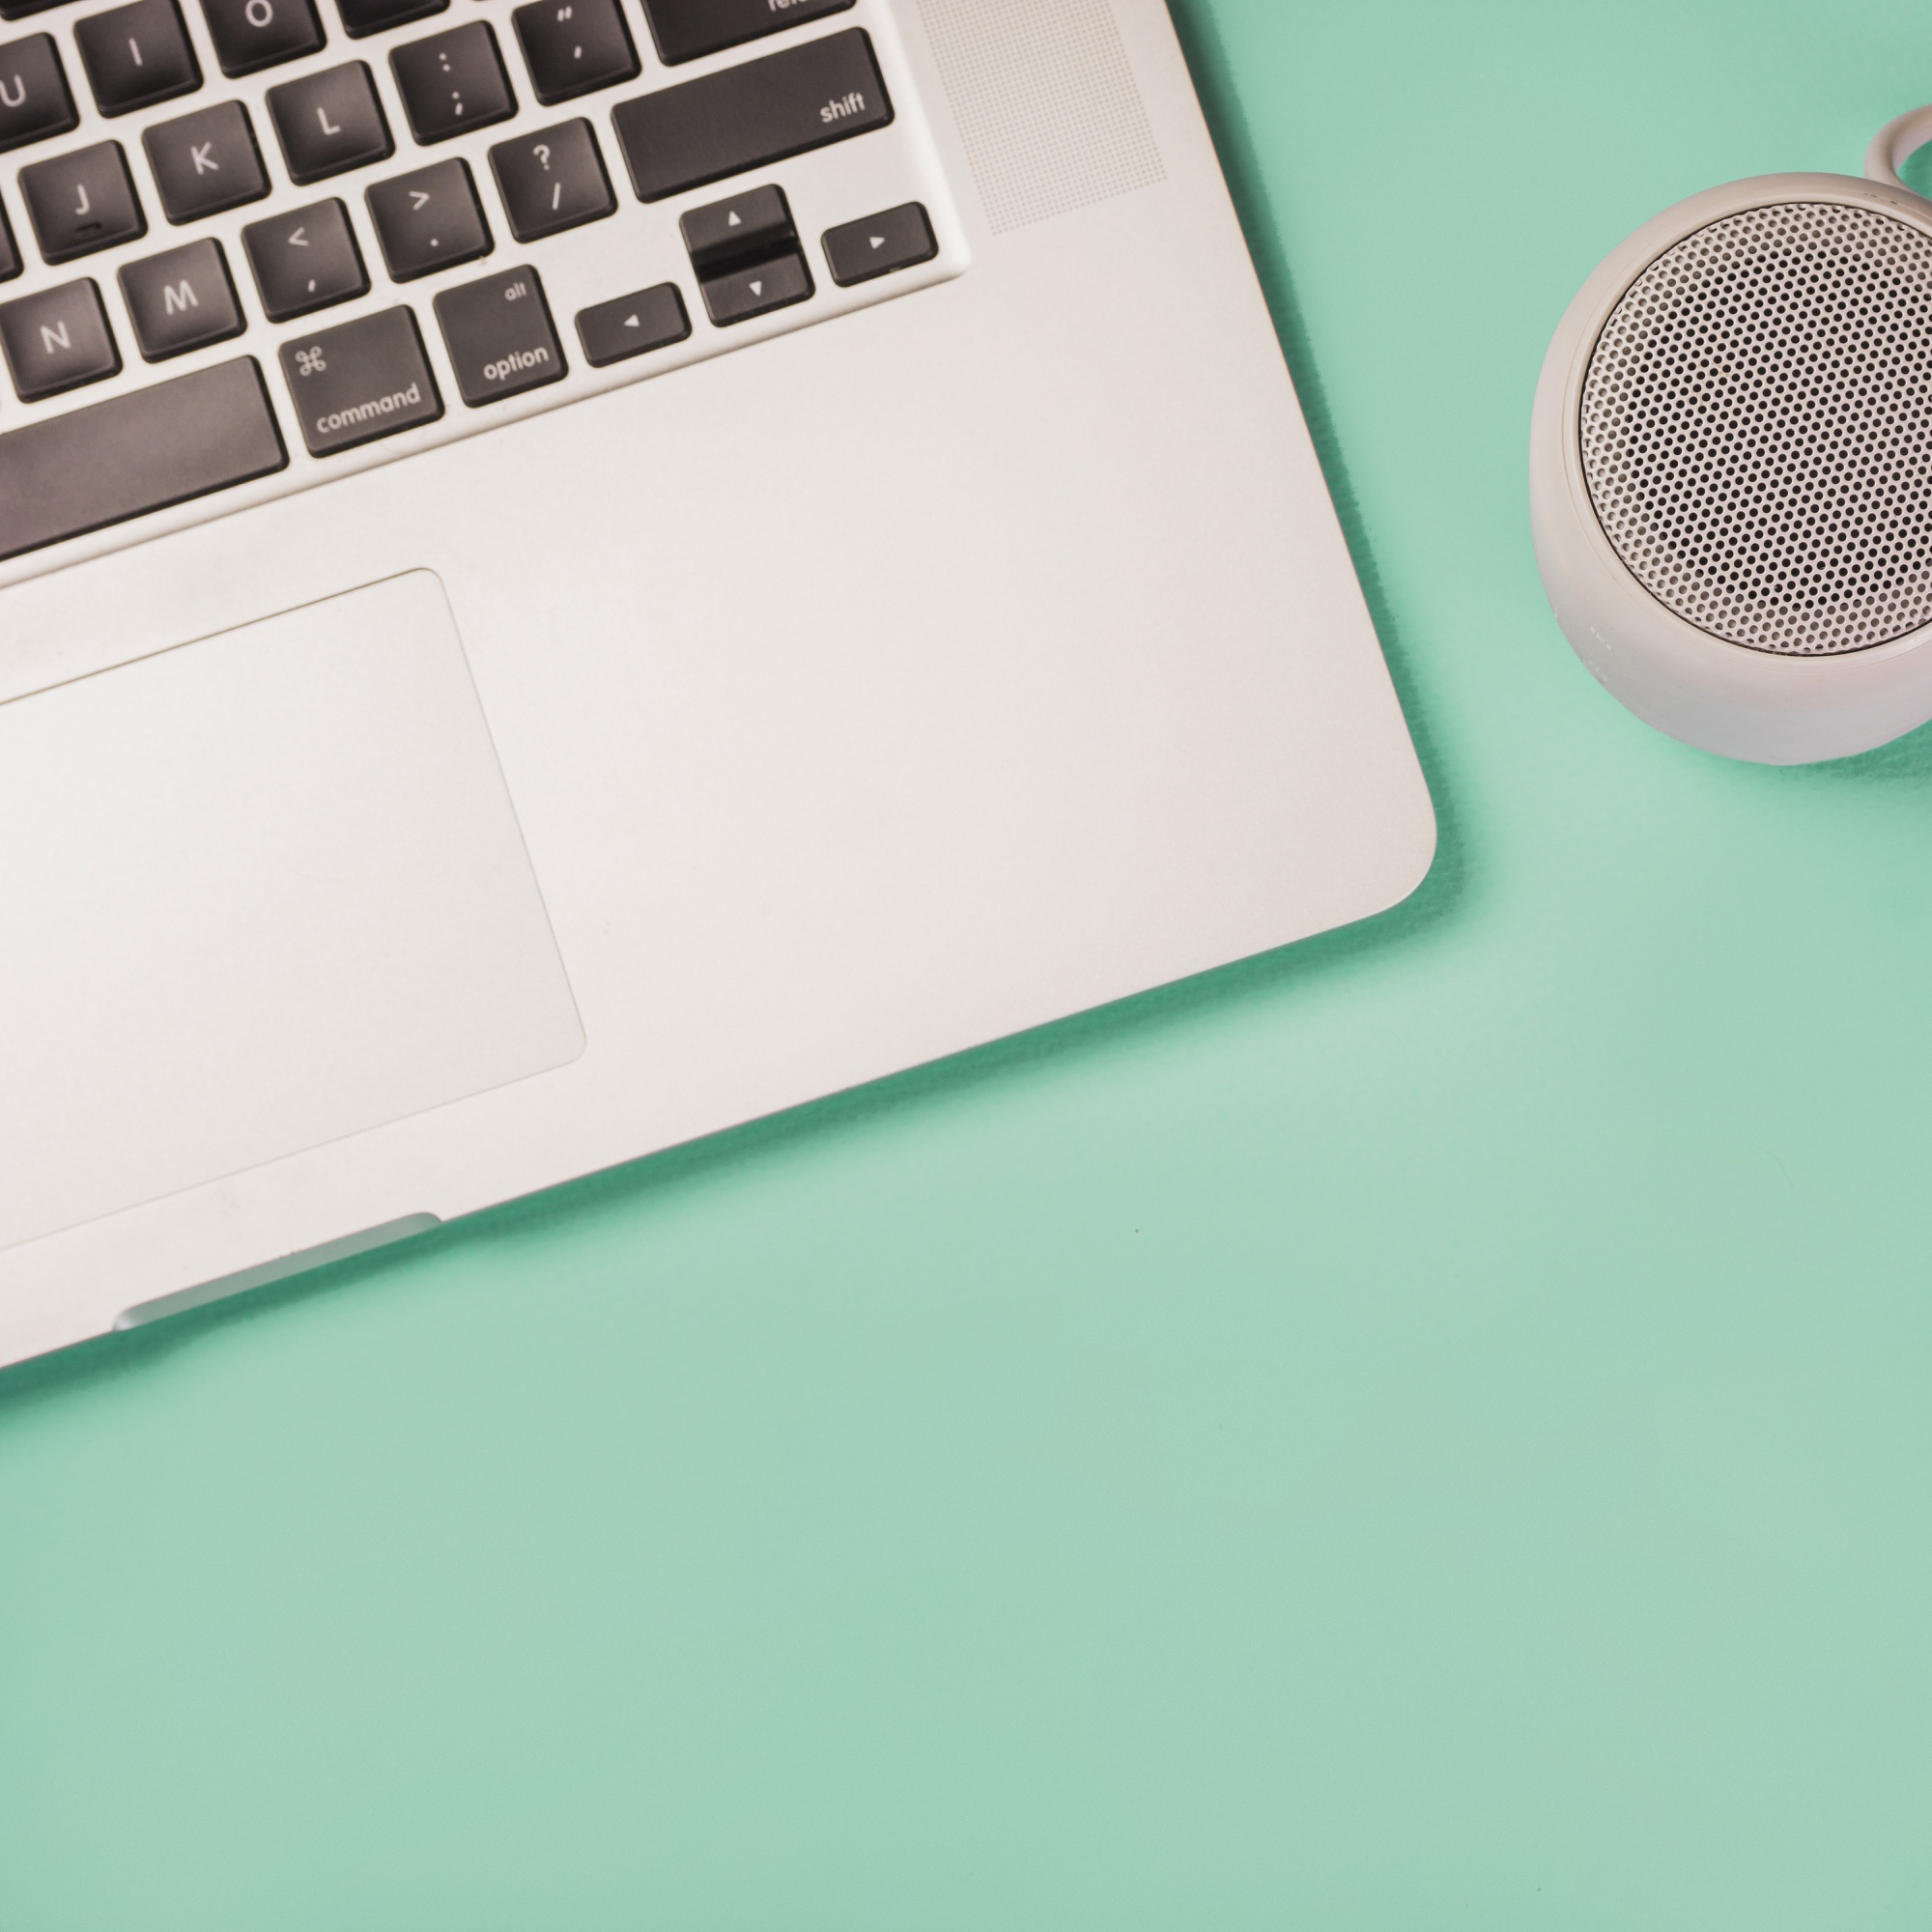 Close-up of bluetooth speaker and laptop on green background